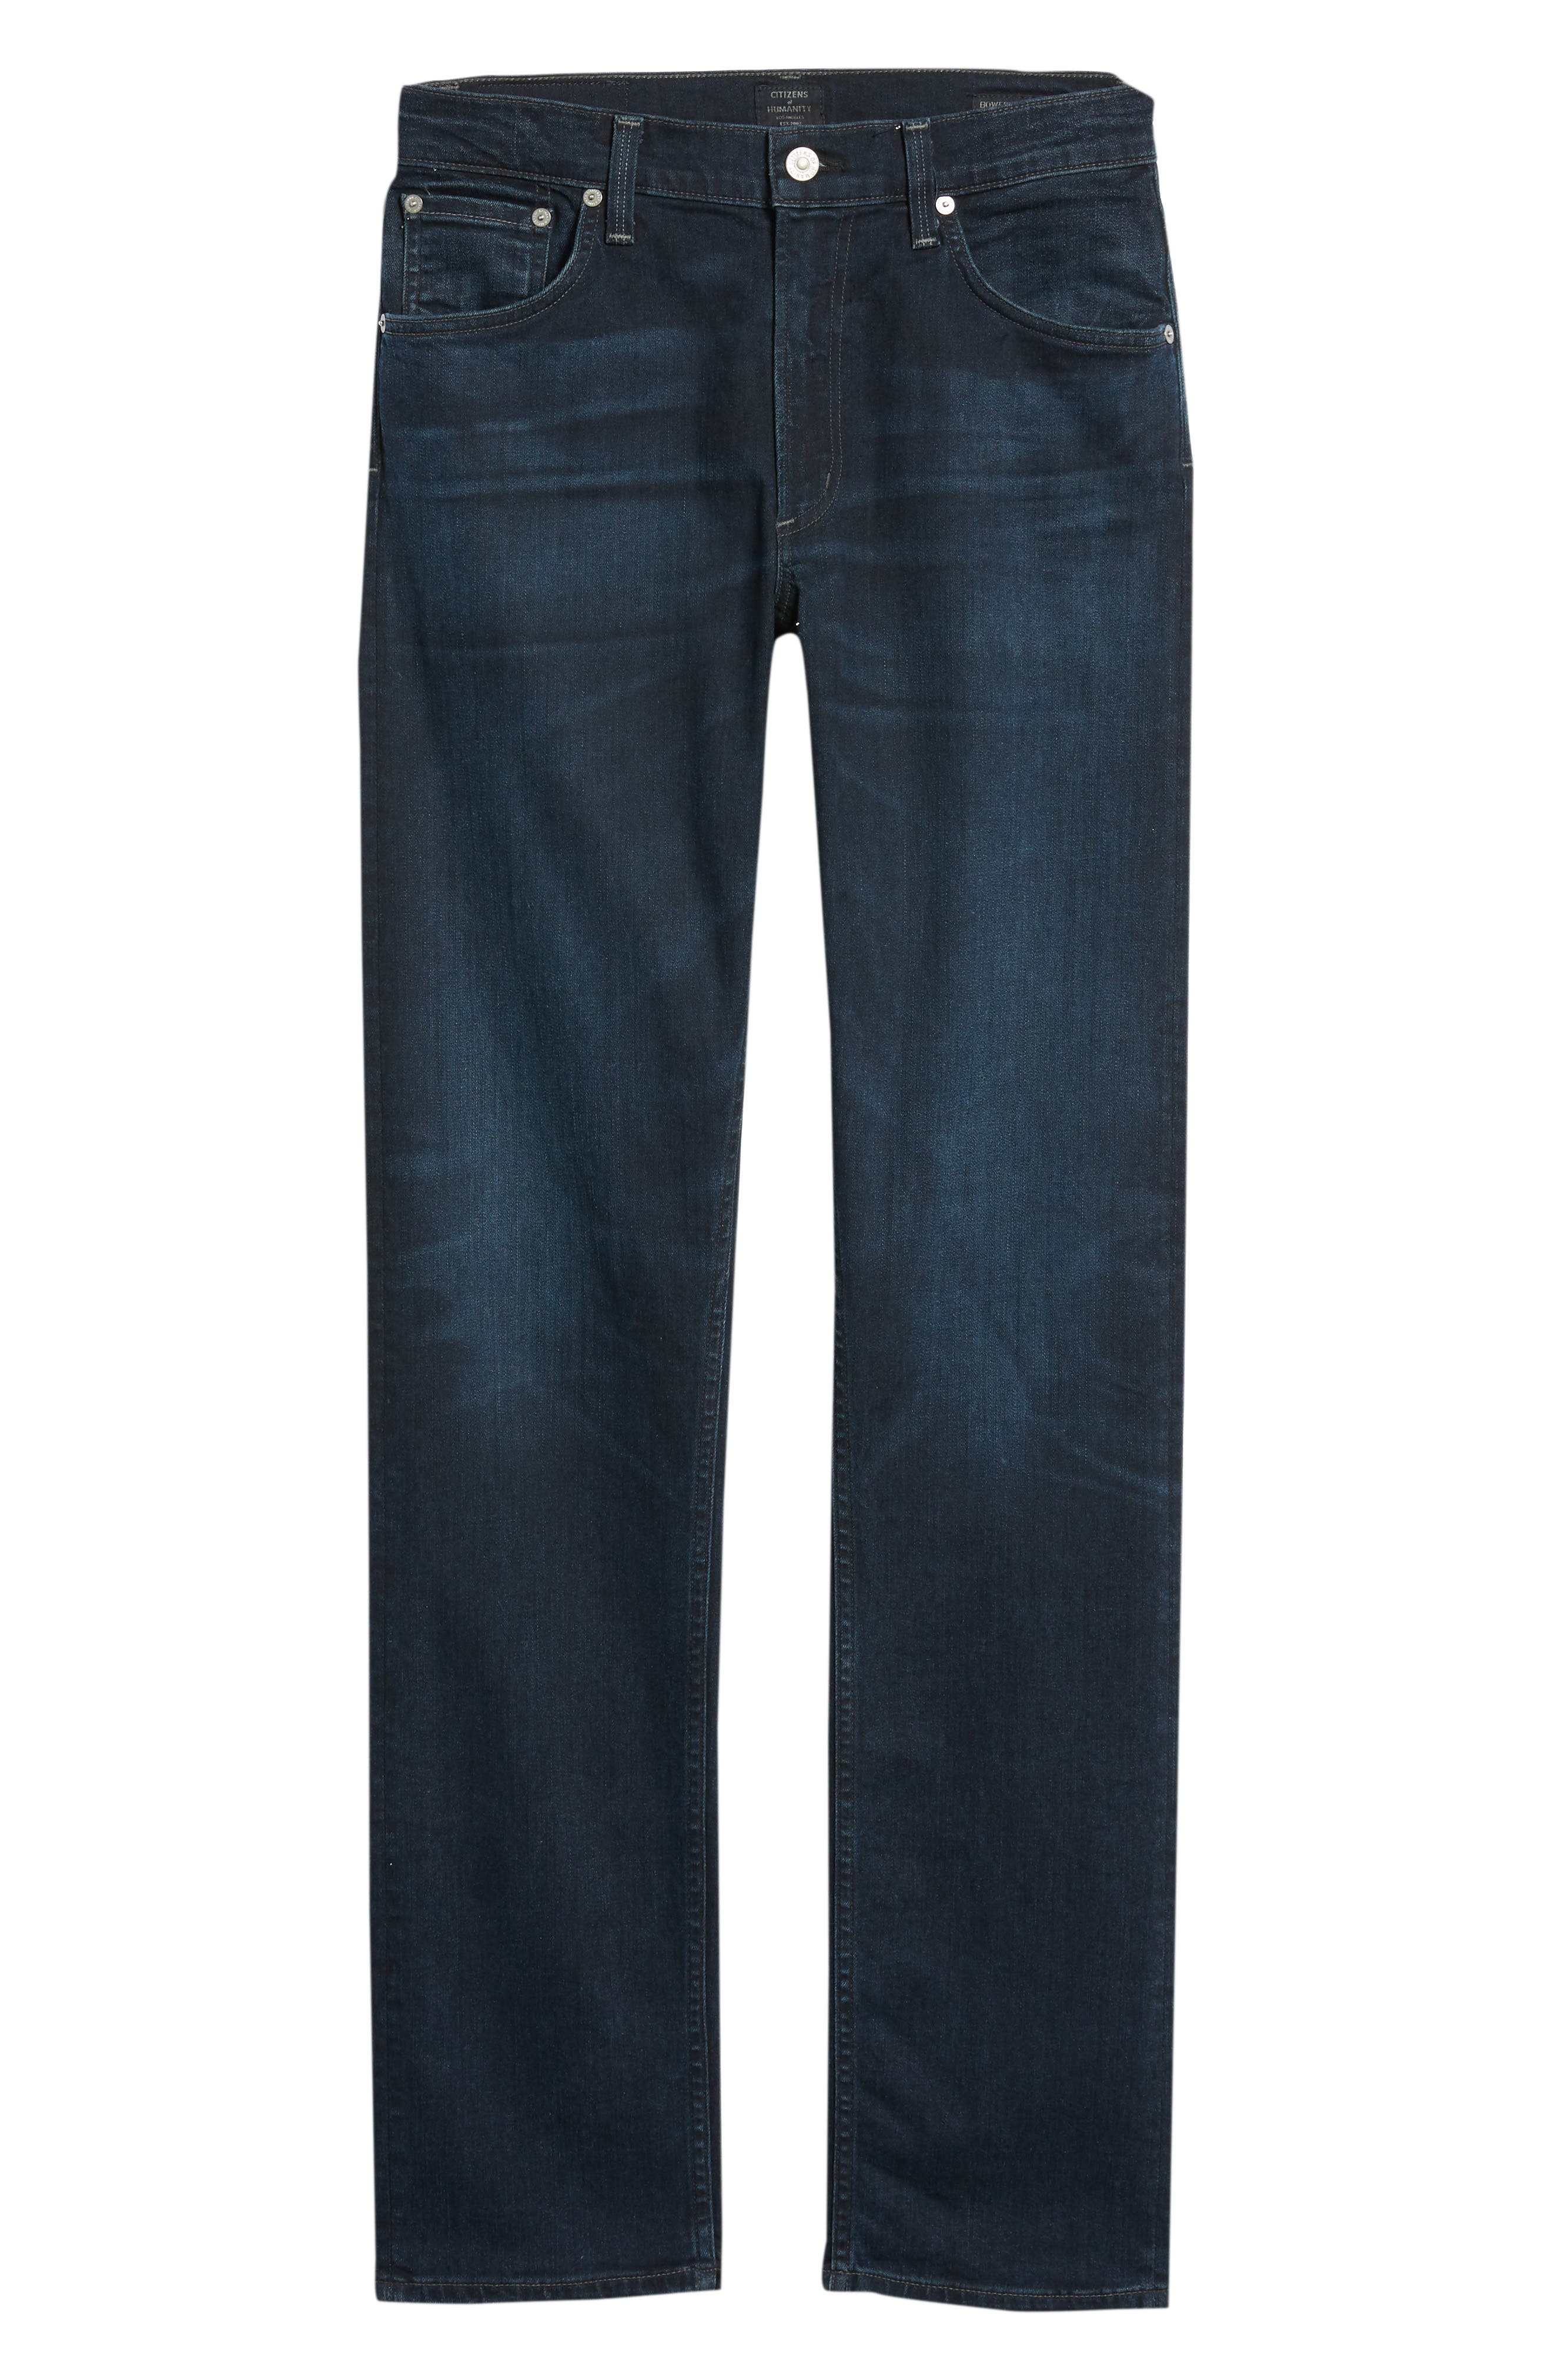 Bowery Slim Fit Jeans,                             Alternate thumbnail 6, color,                             407